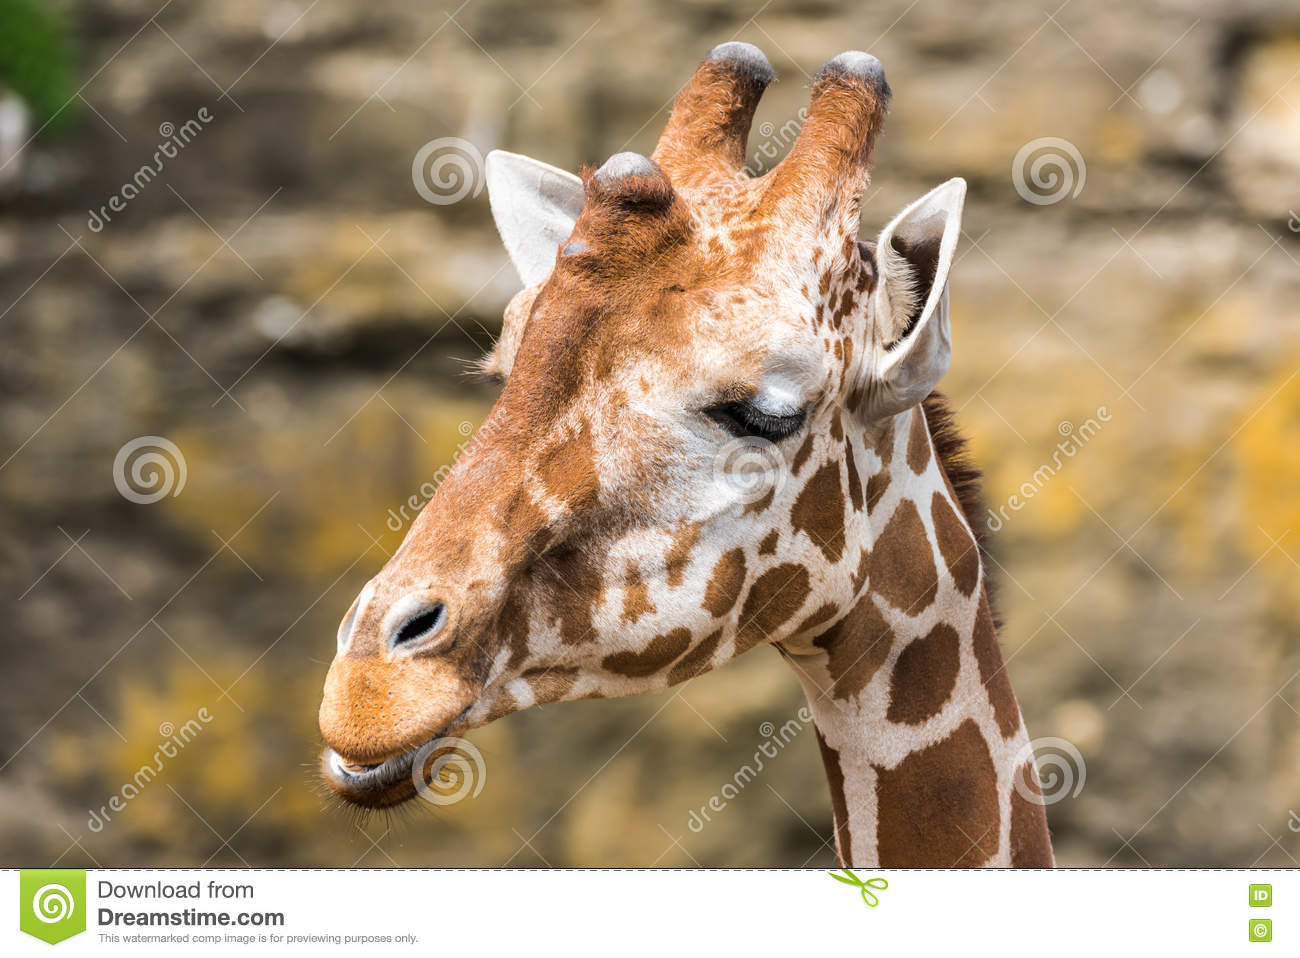 Closeup head view of a Giraffe